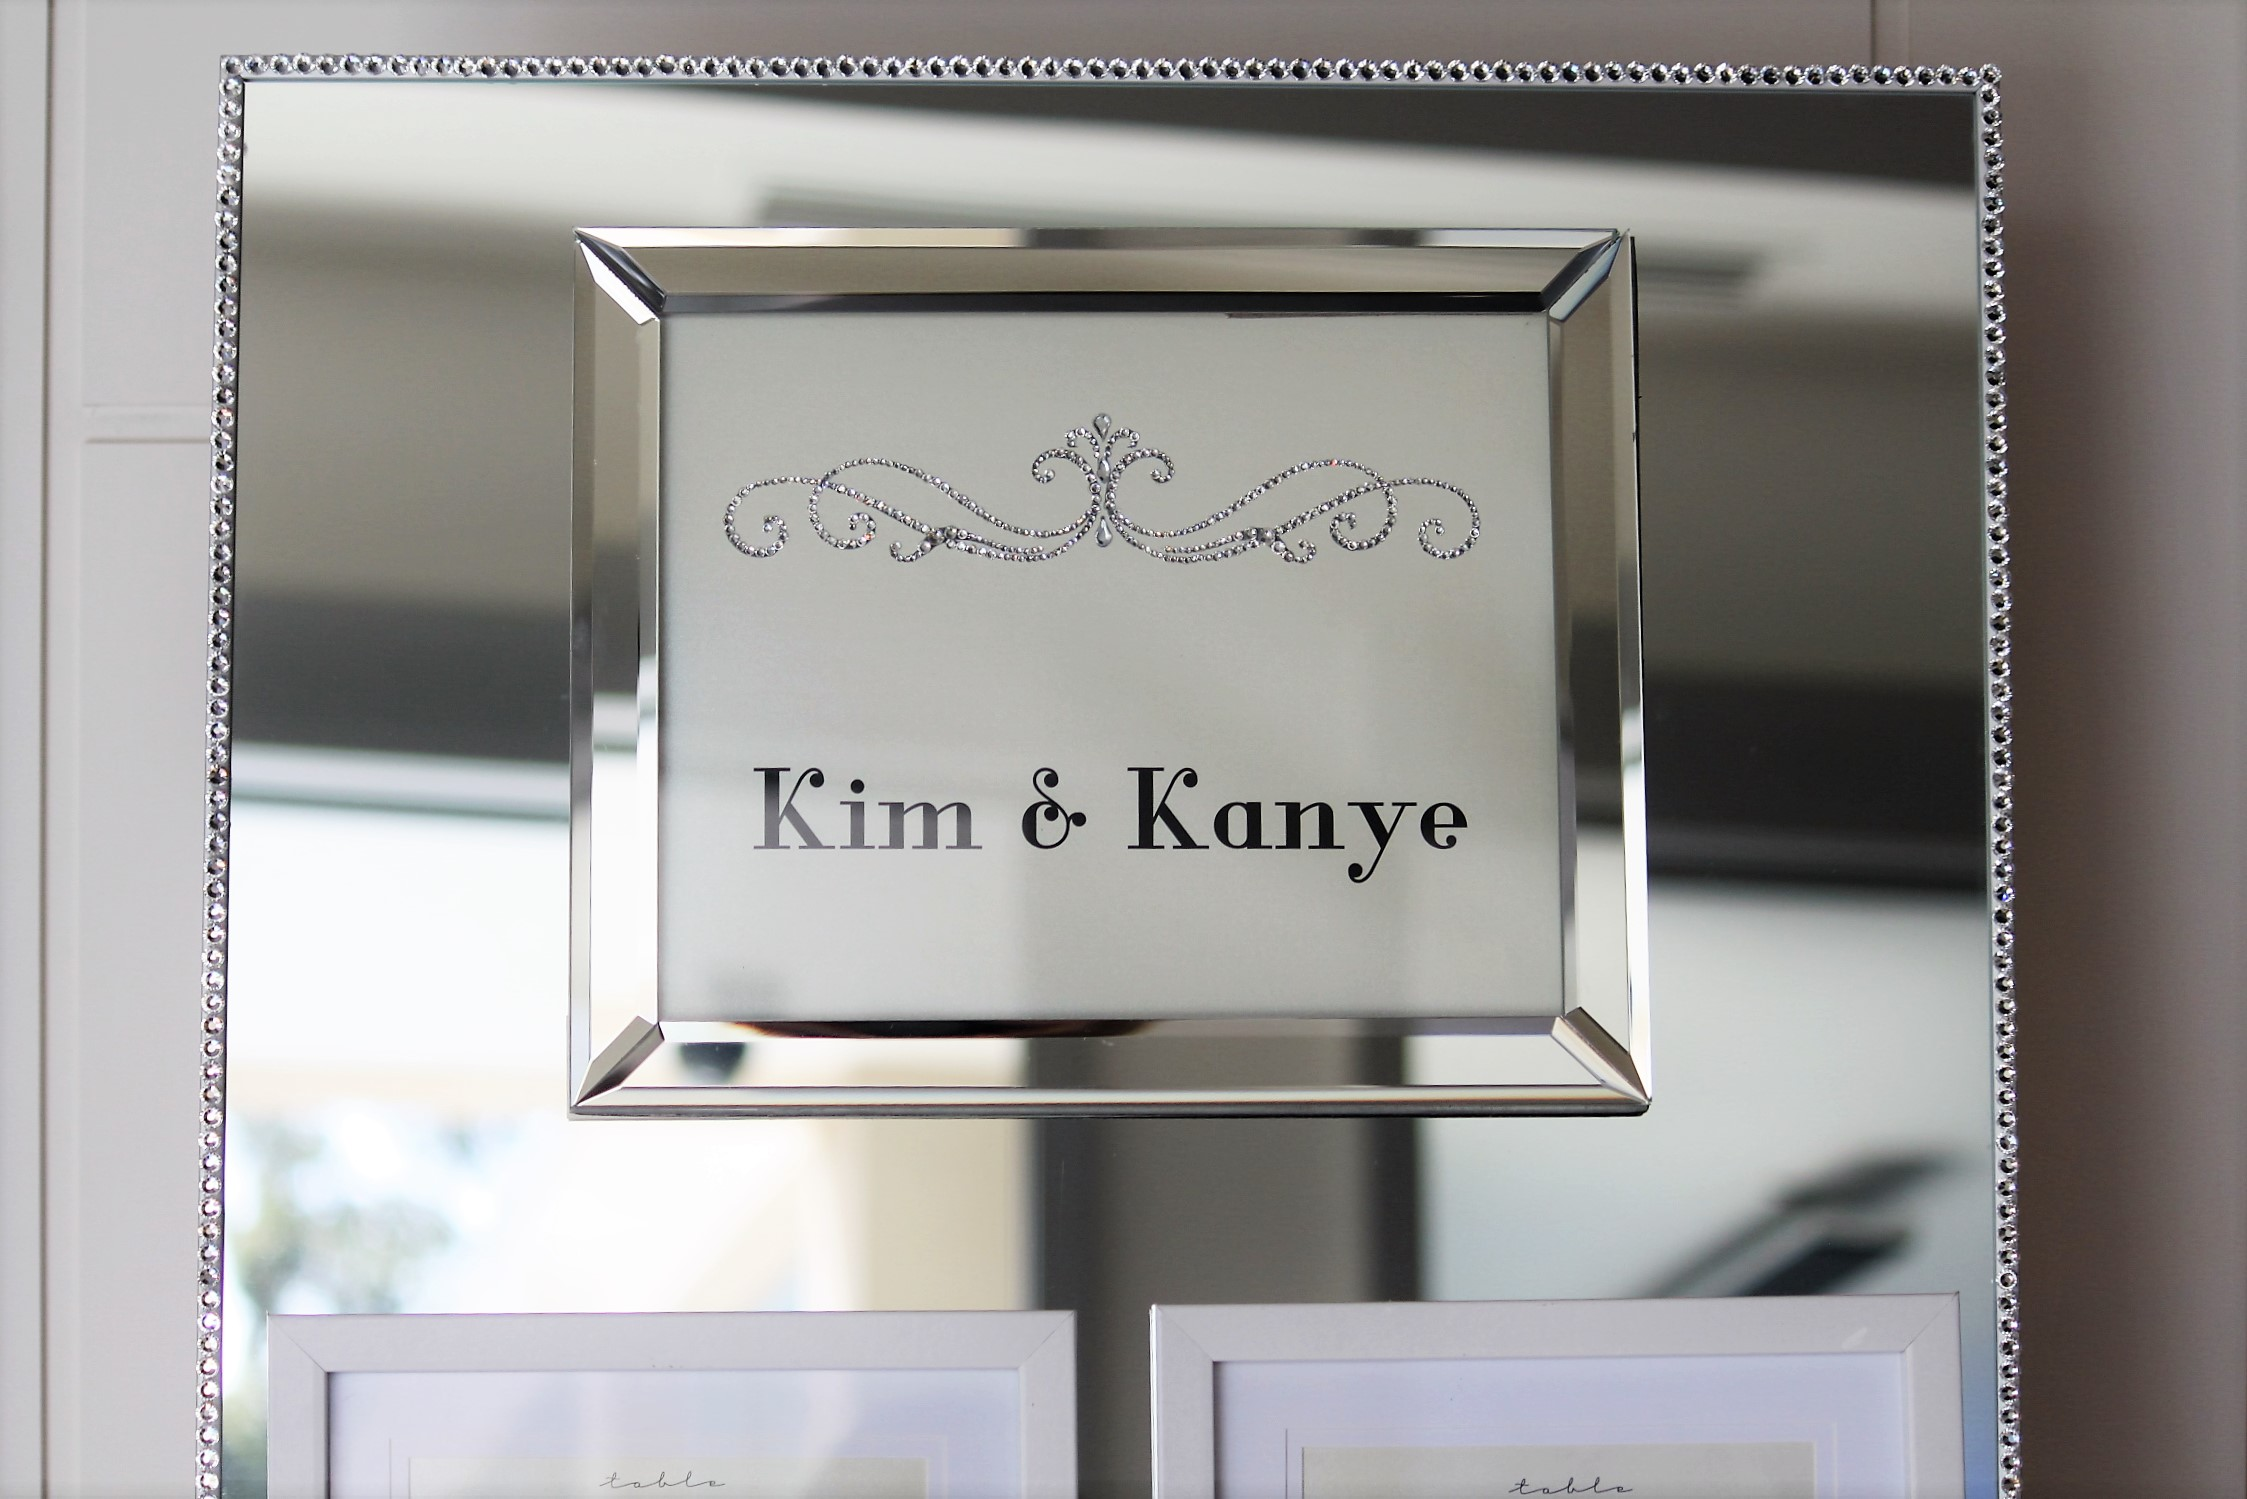 weve chosen a selection of photo frames from kmart to make this project the top frame with kim kanyes name in it is an 8 x 10 mirror frame 10